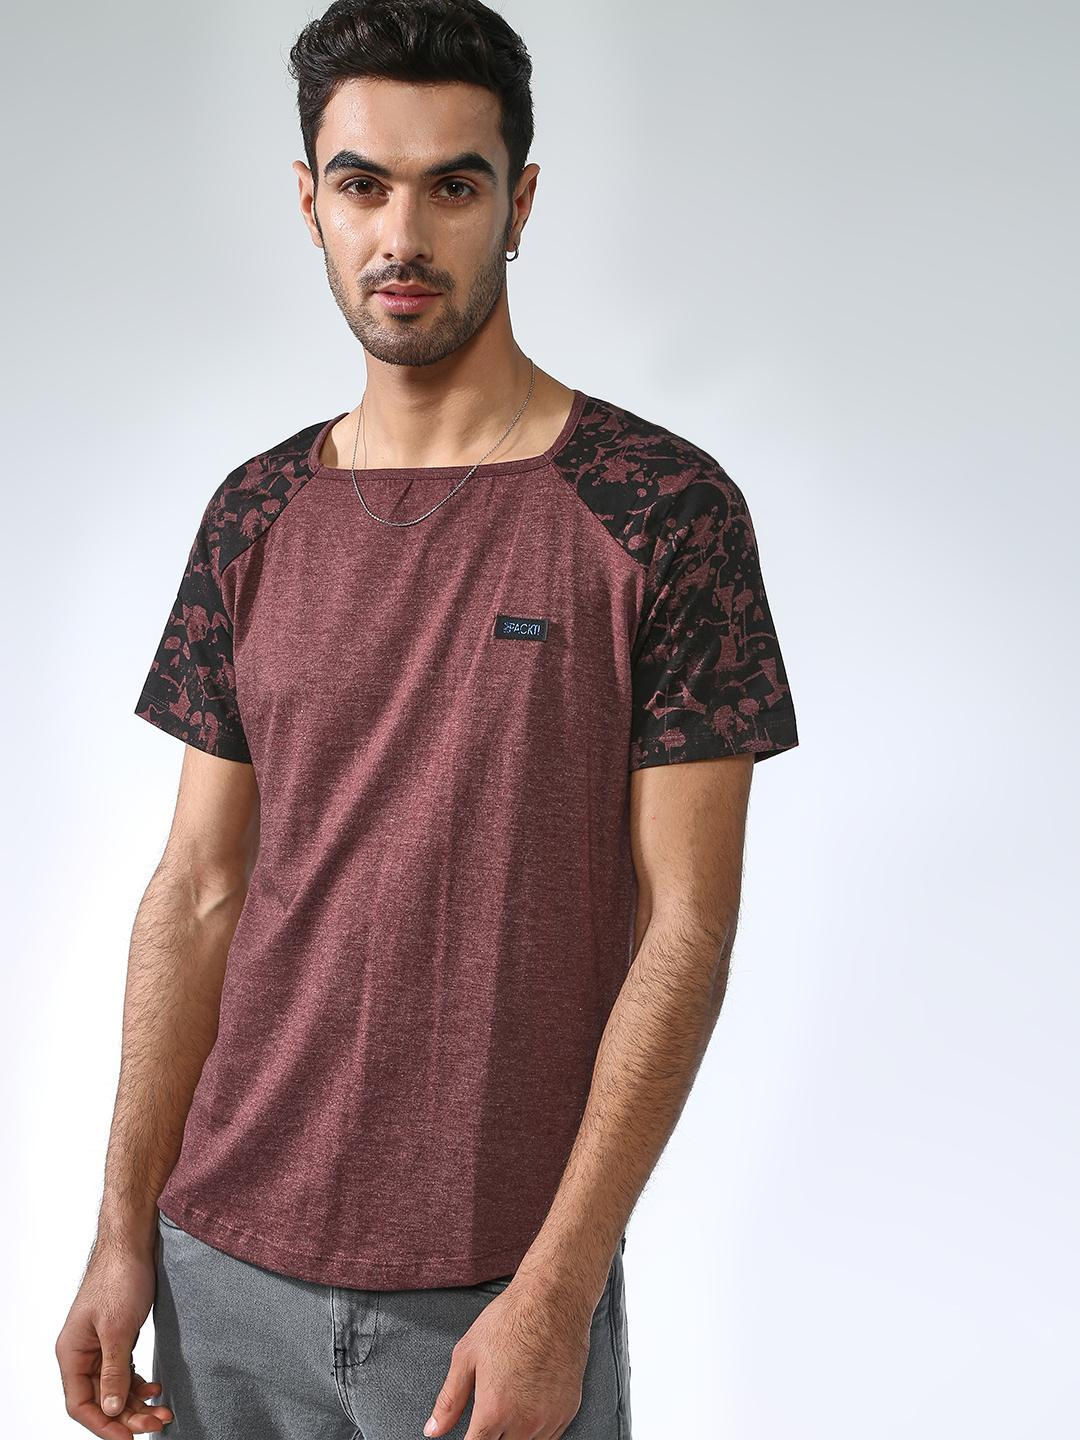 IMPACKT Multi Side Camo Print Short Sleeves T-shirt 1